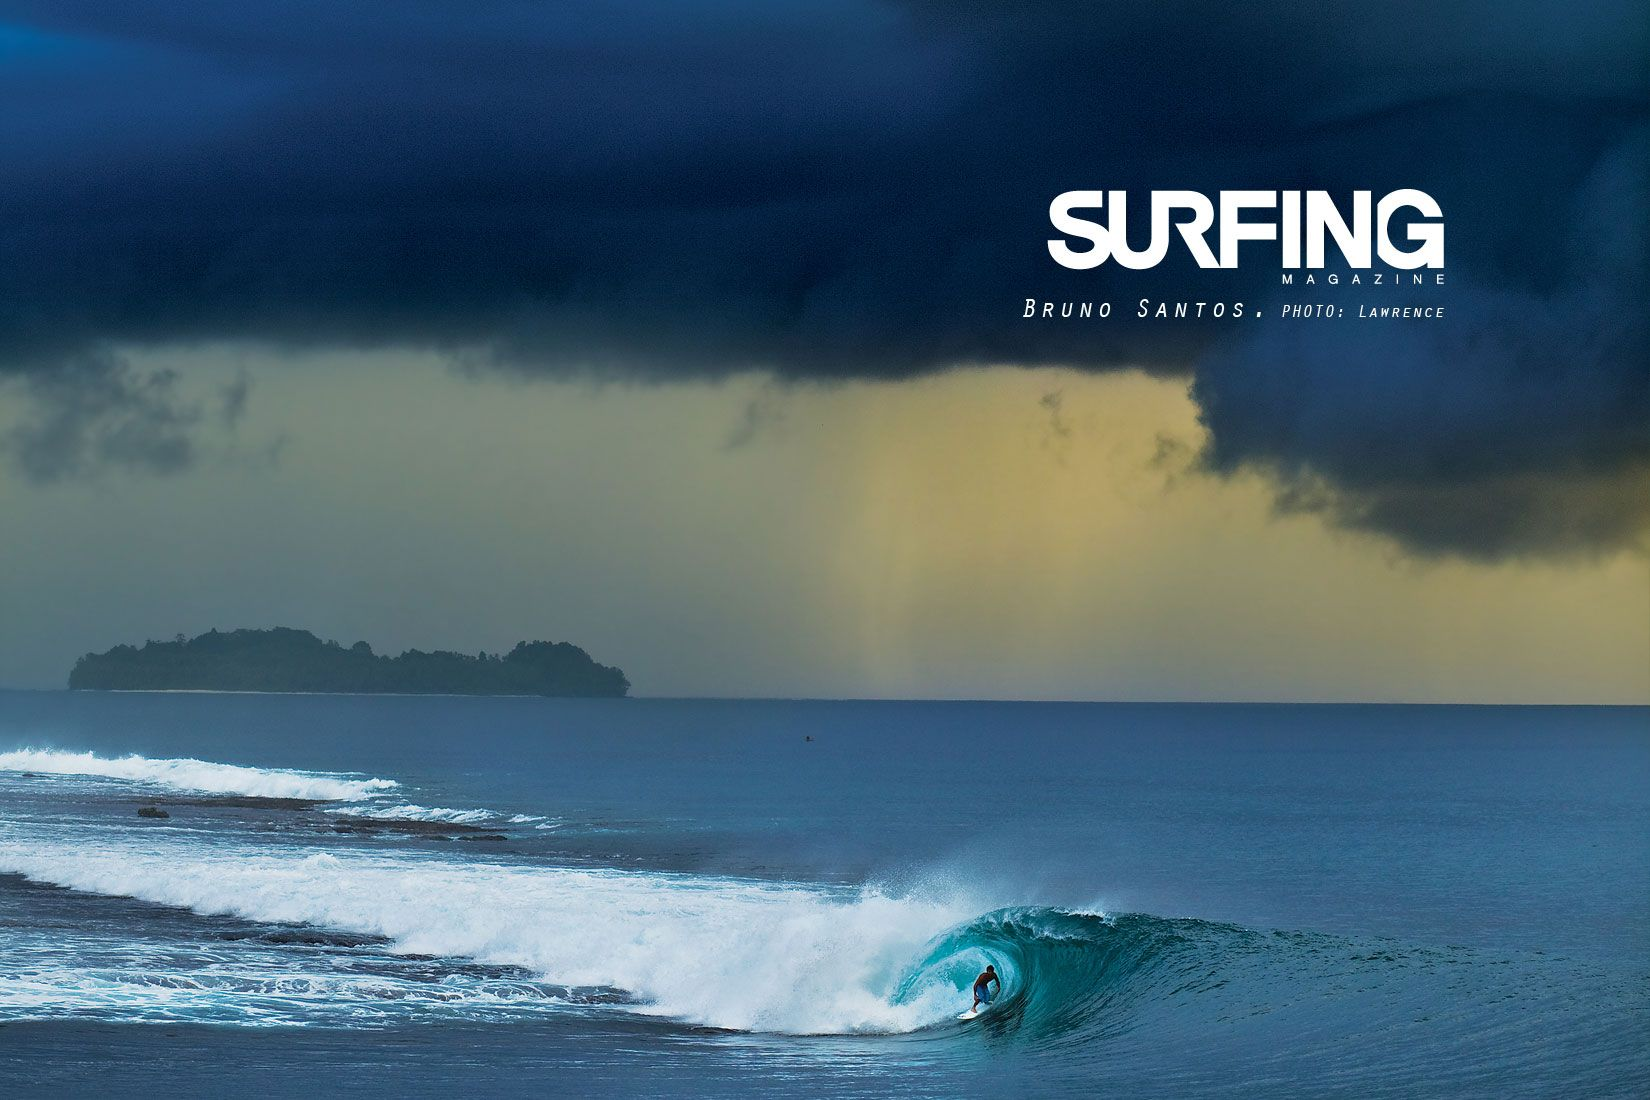 Surfing Hd Desktop Wallpapers For Widescreen Surfing Teahupoo Photo